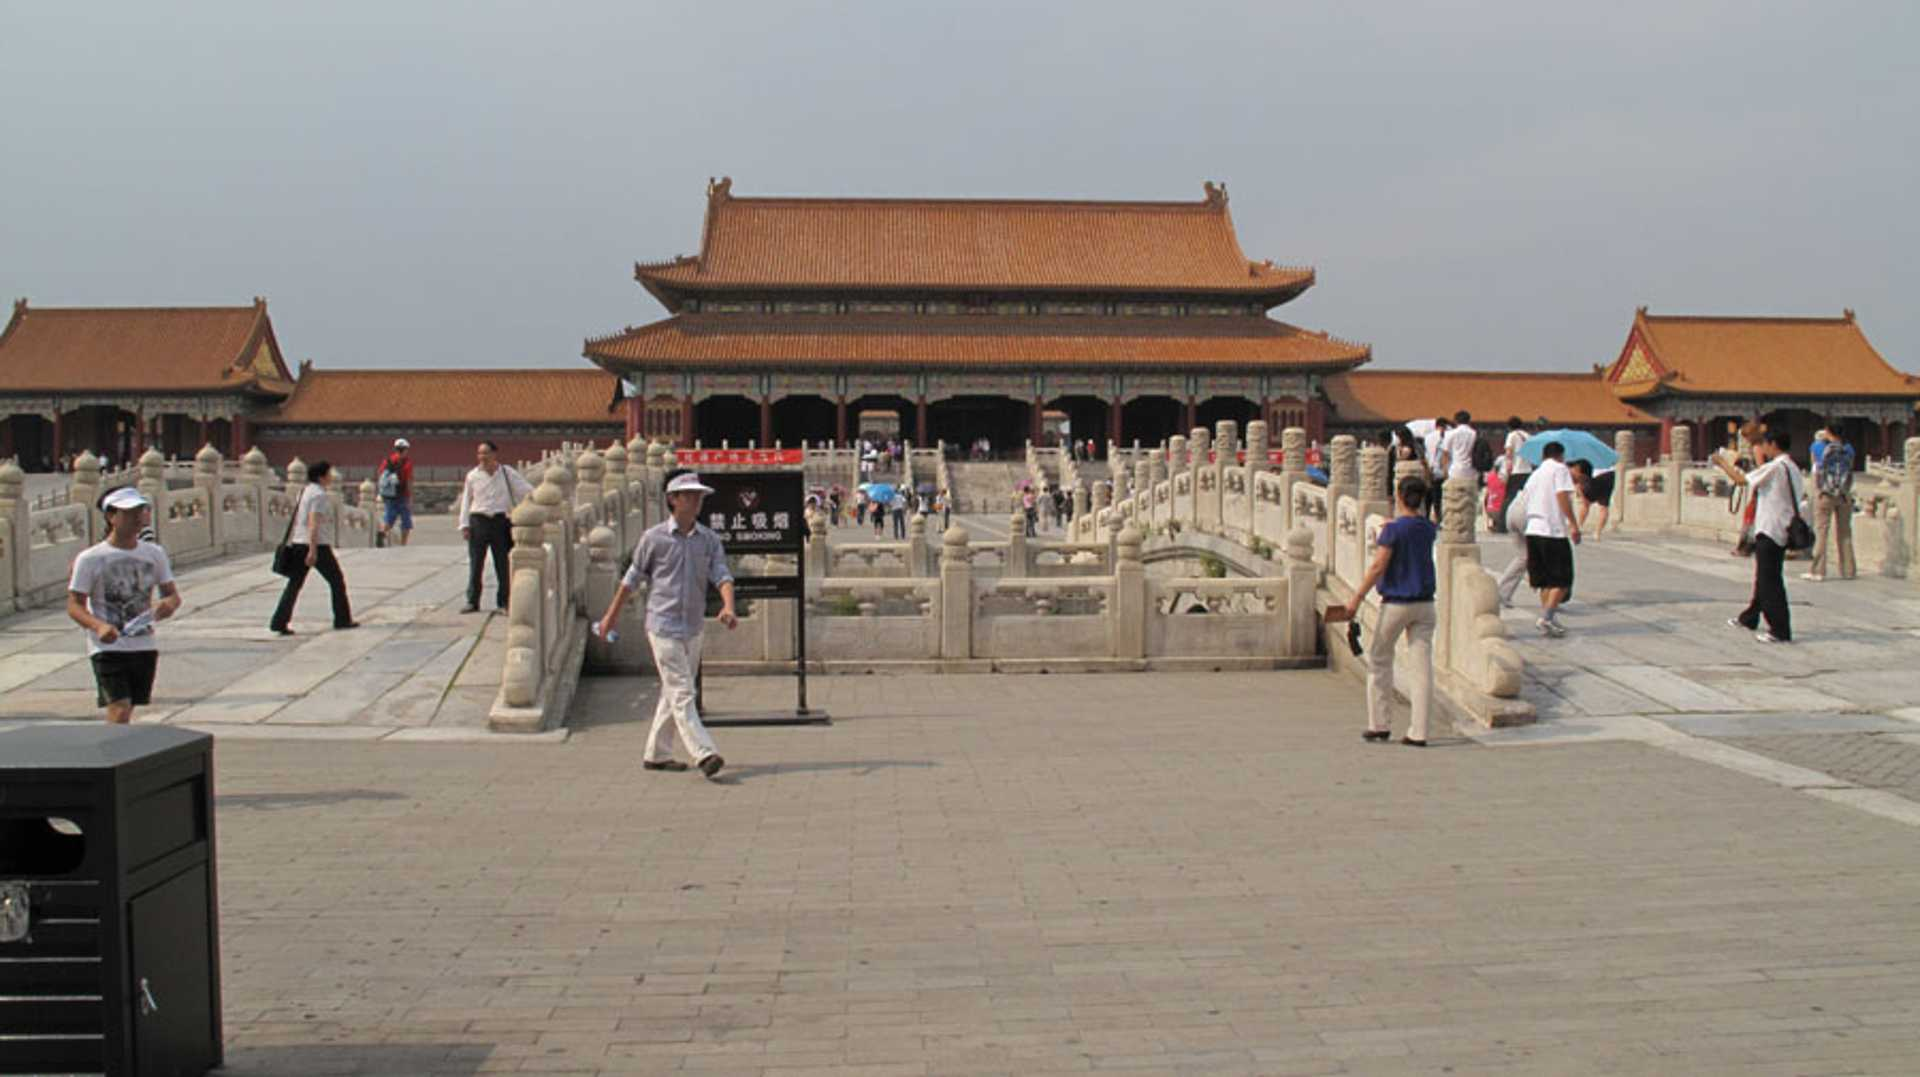 3 - Allocate ample time for The Forbidden City